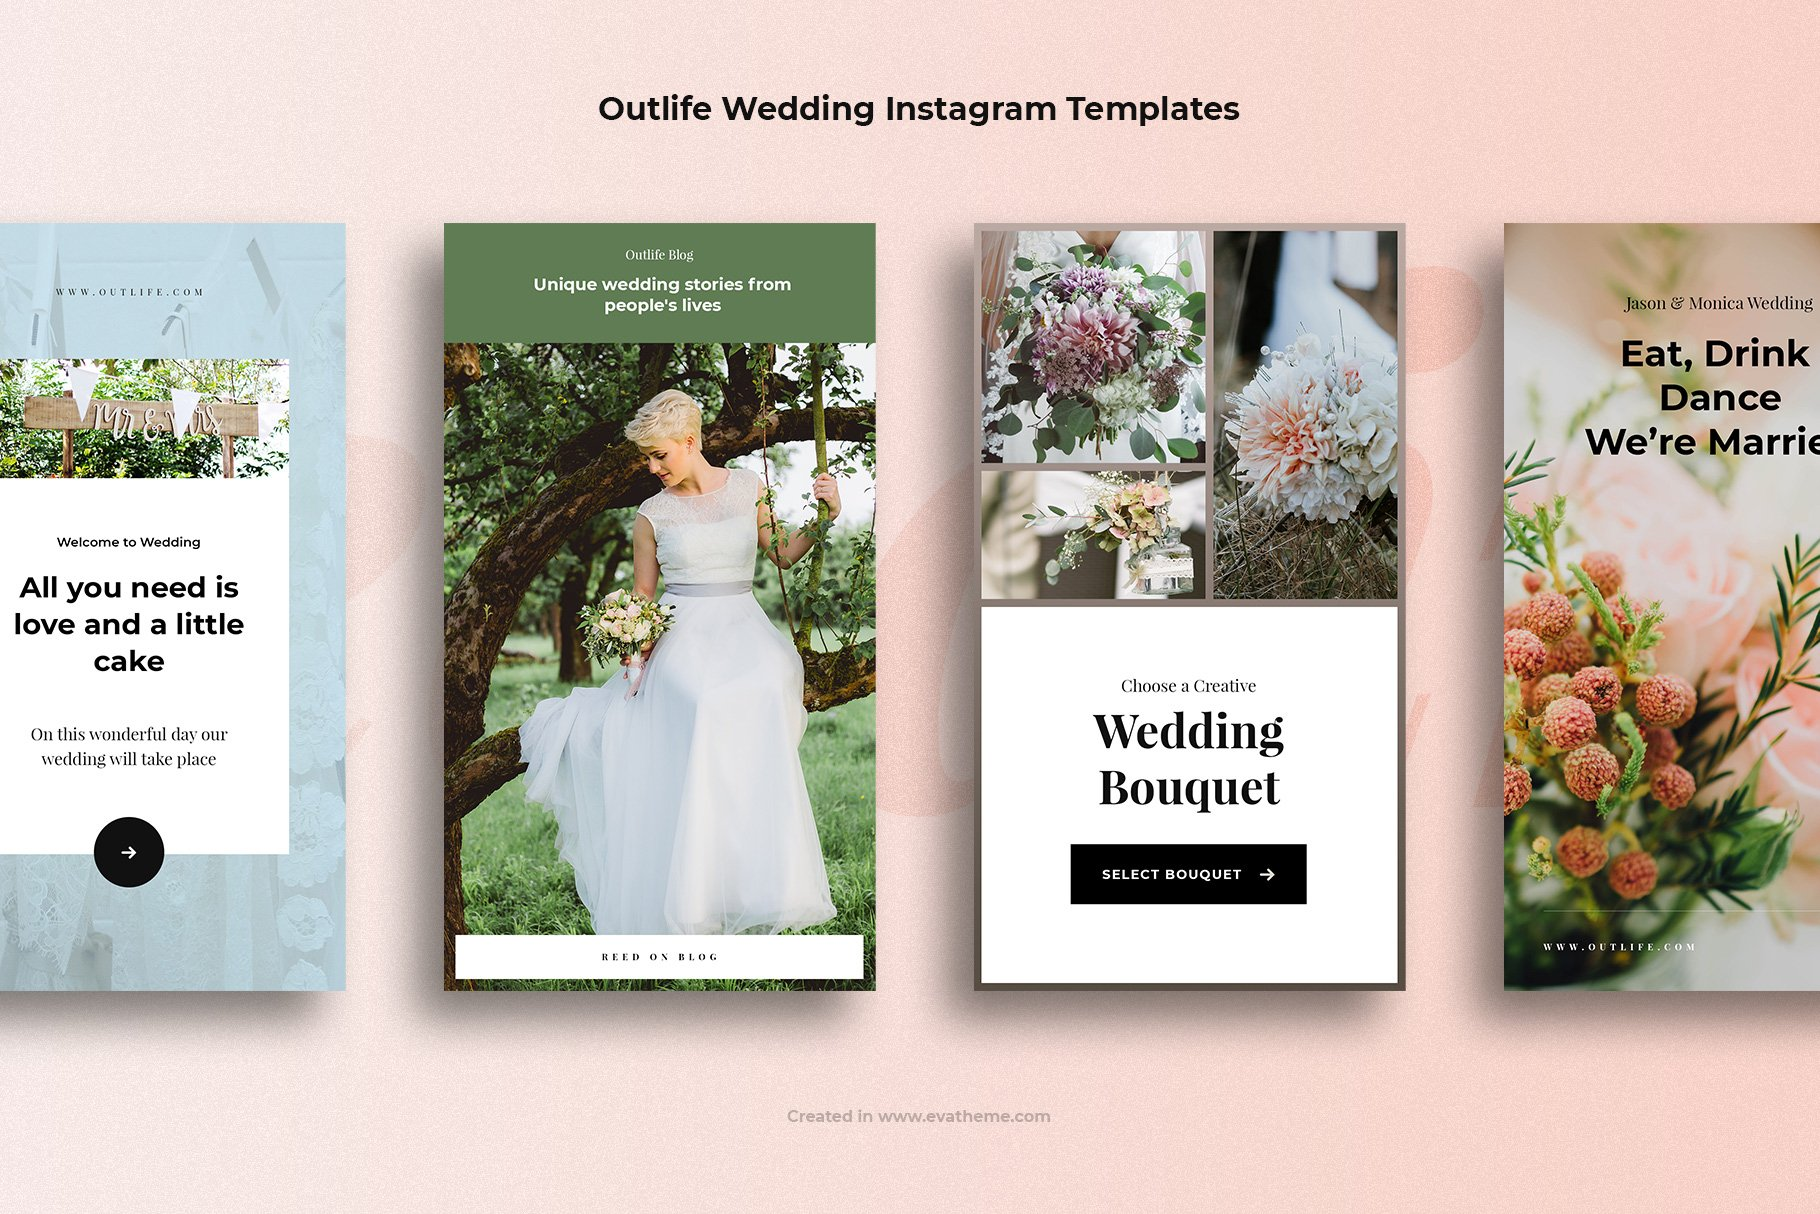 Outlife Wedding Instagram Templates example image 3